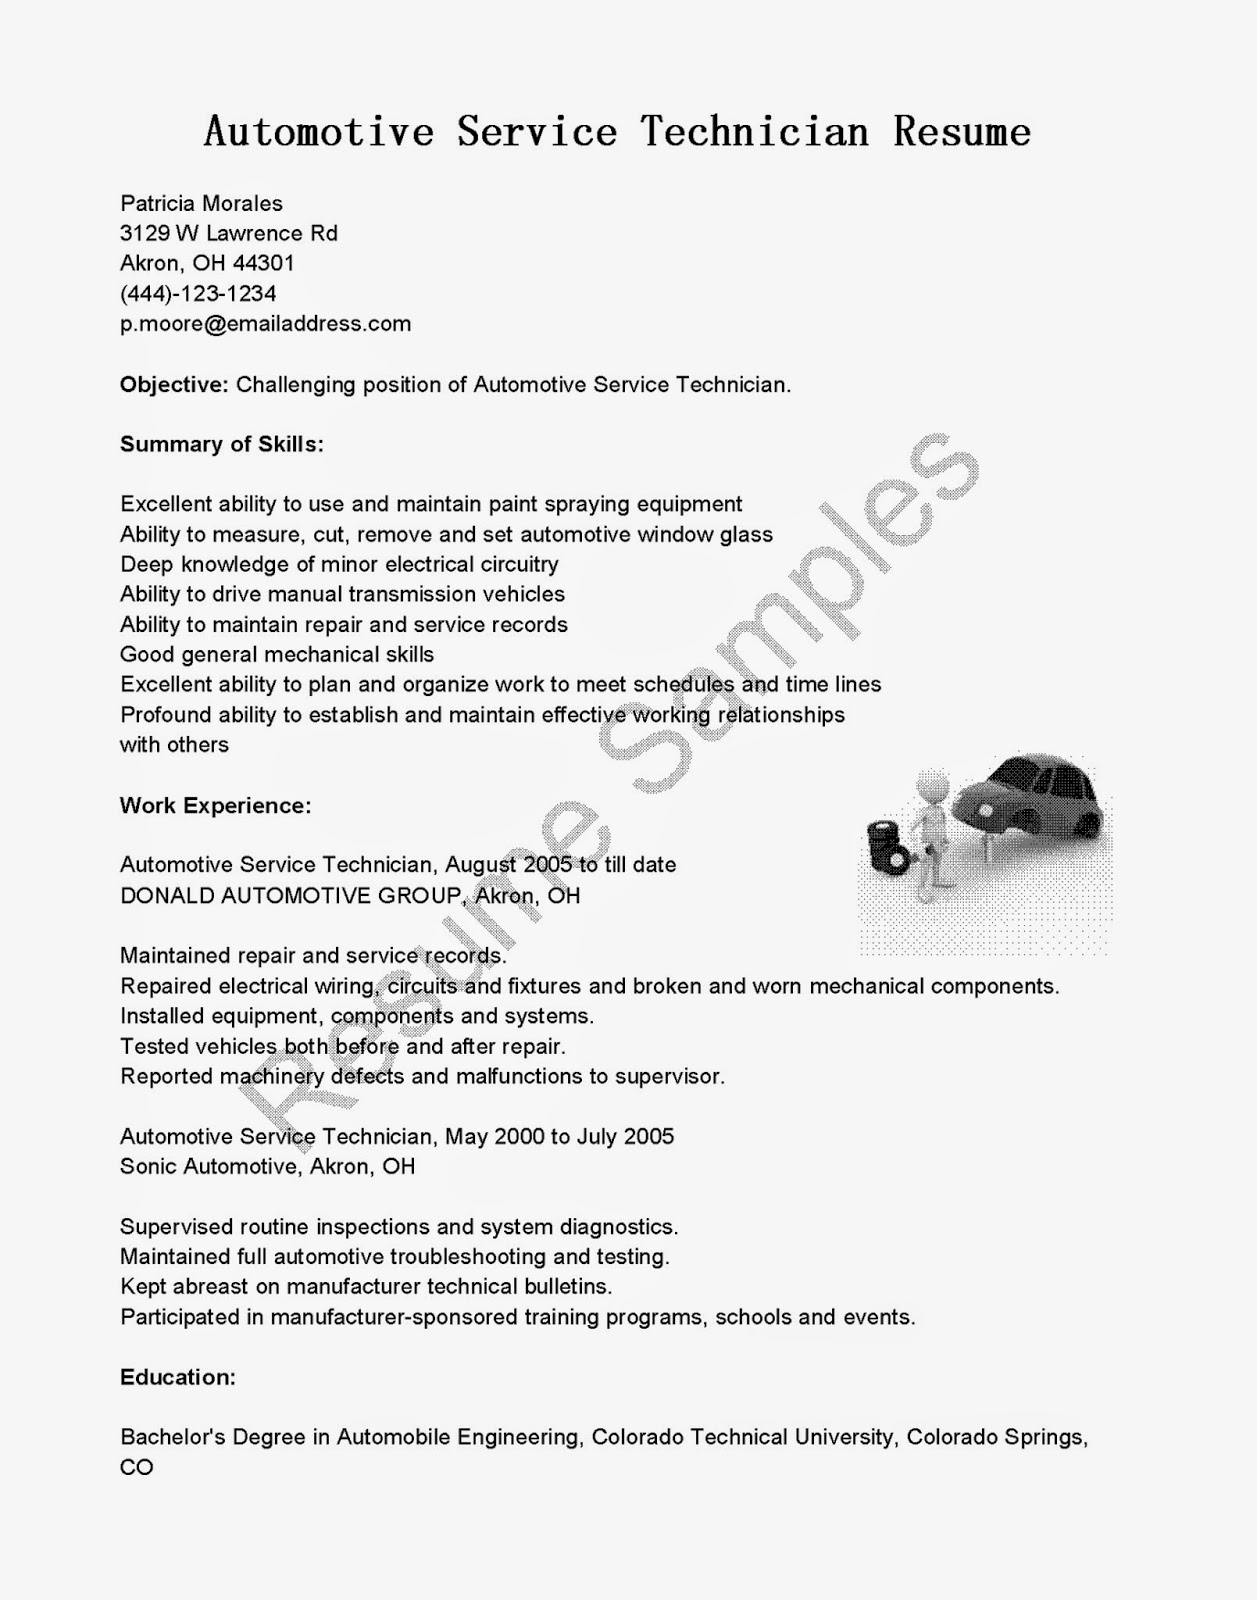 mechanic resume examples resume example free resume maker automotive2bservice2btechnician2bresume automotive